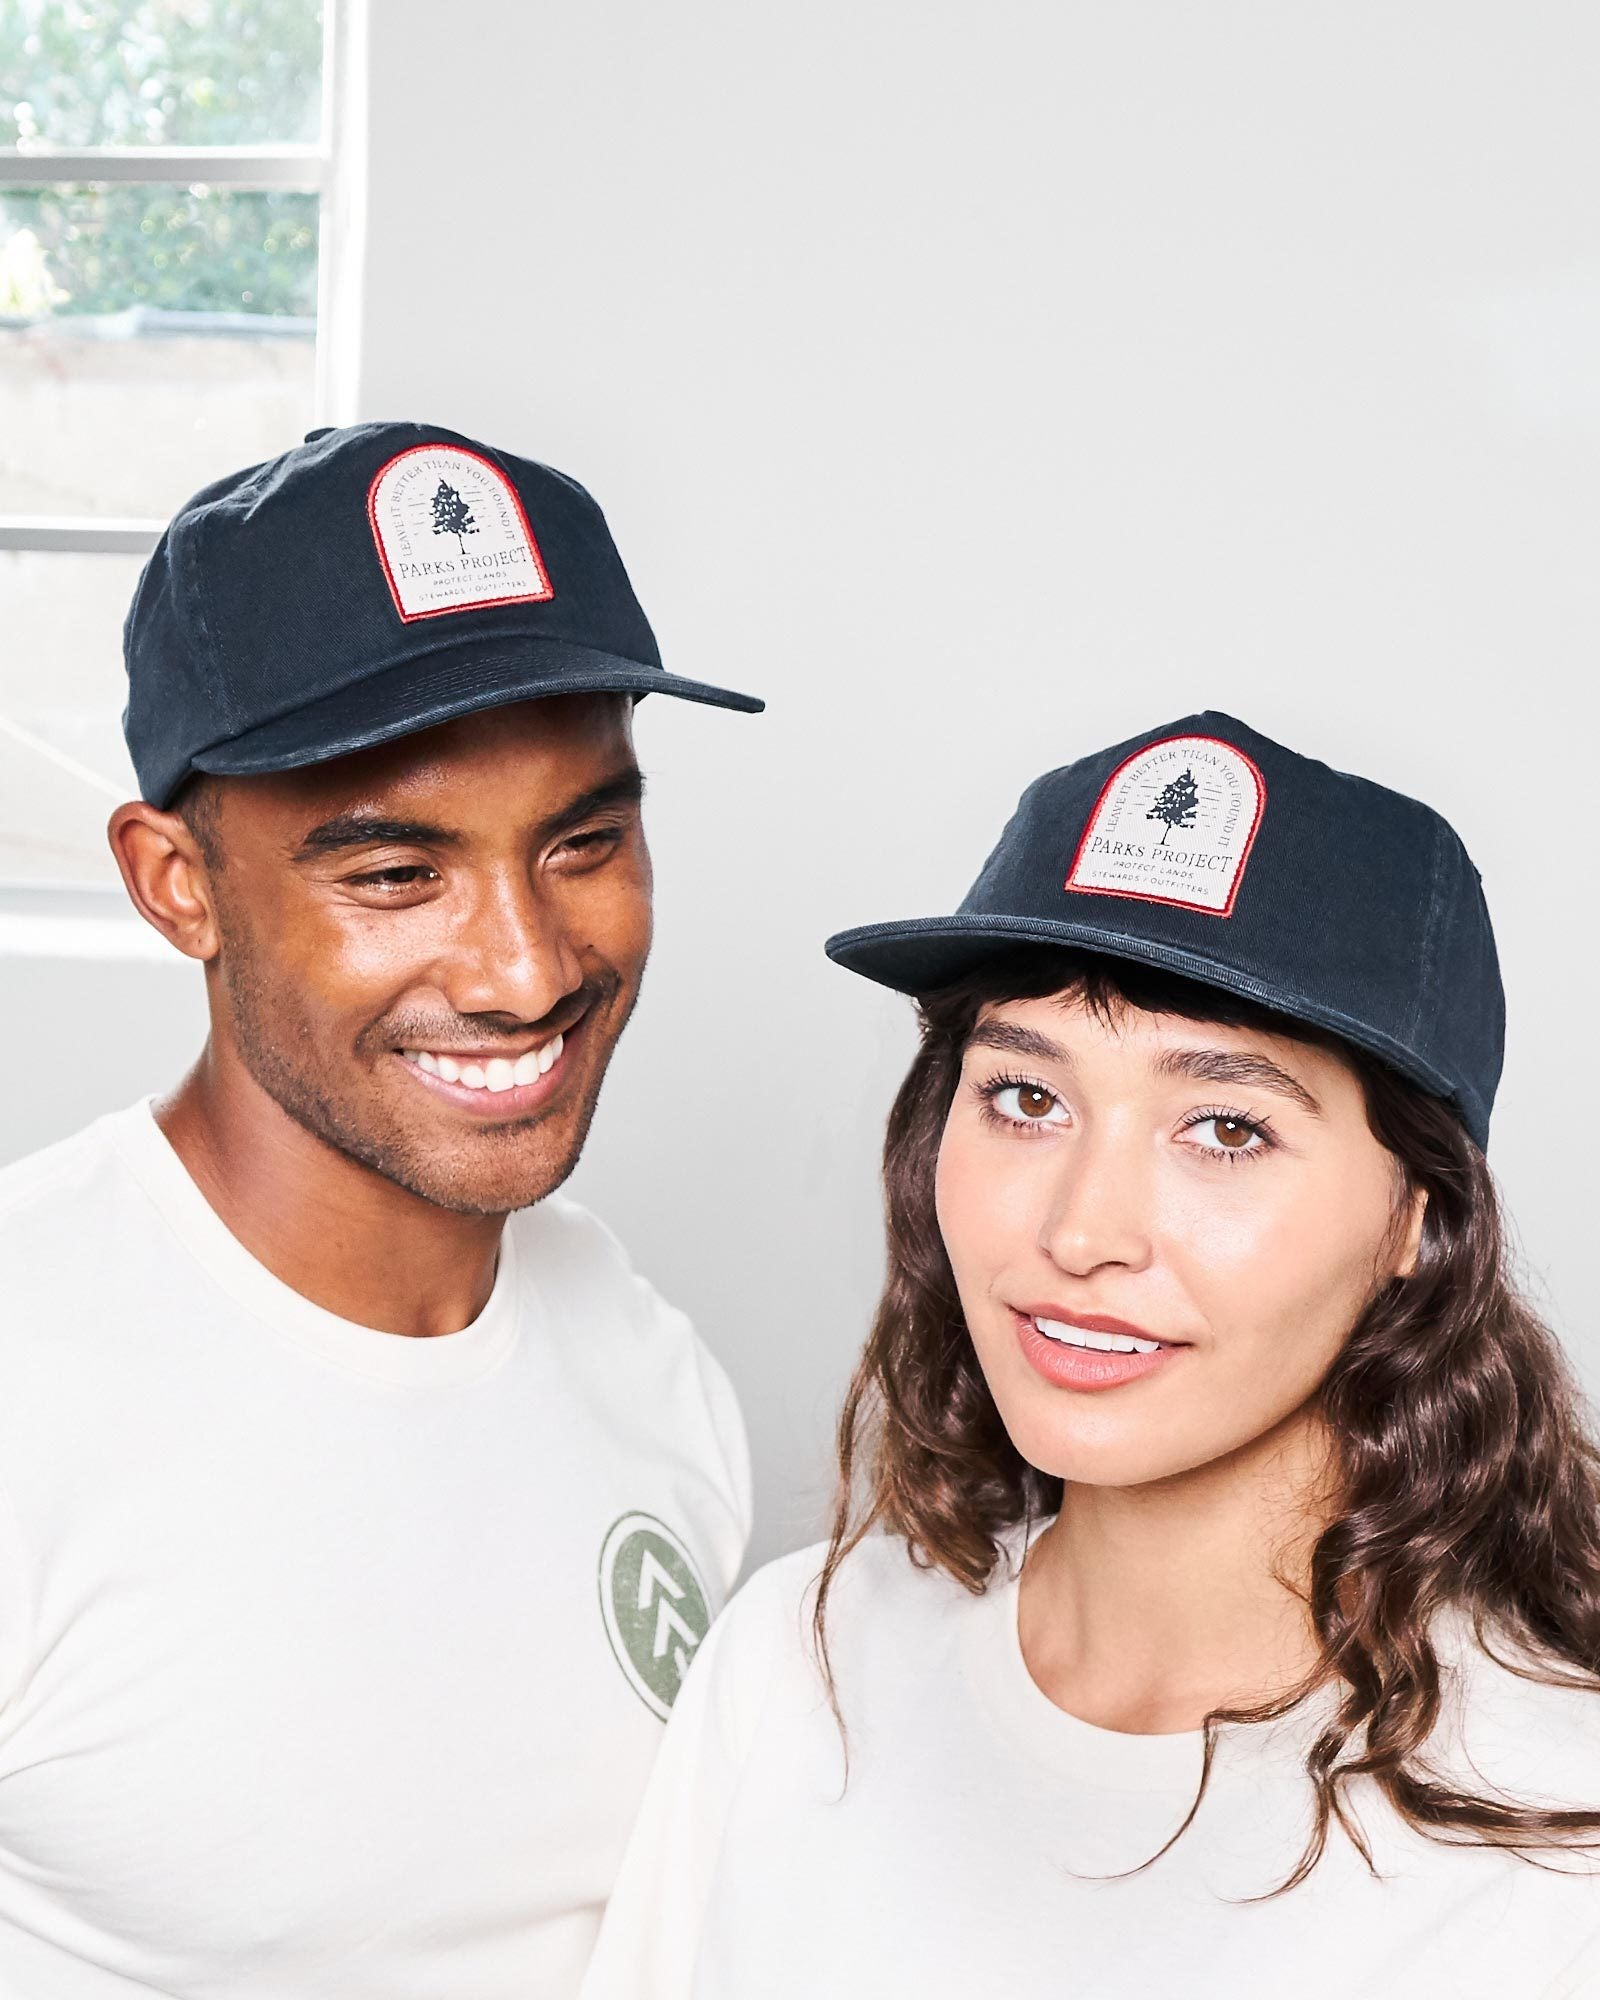 Leave it Better Tree Patch Hat